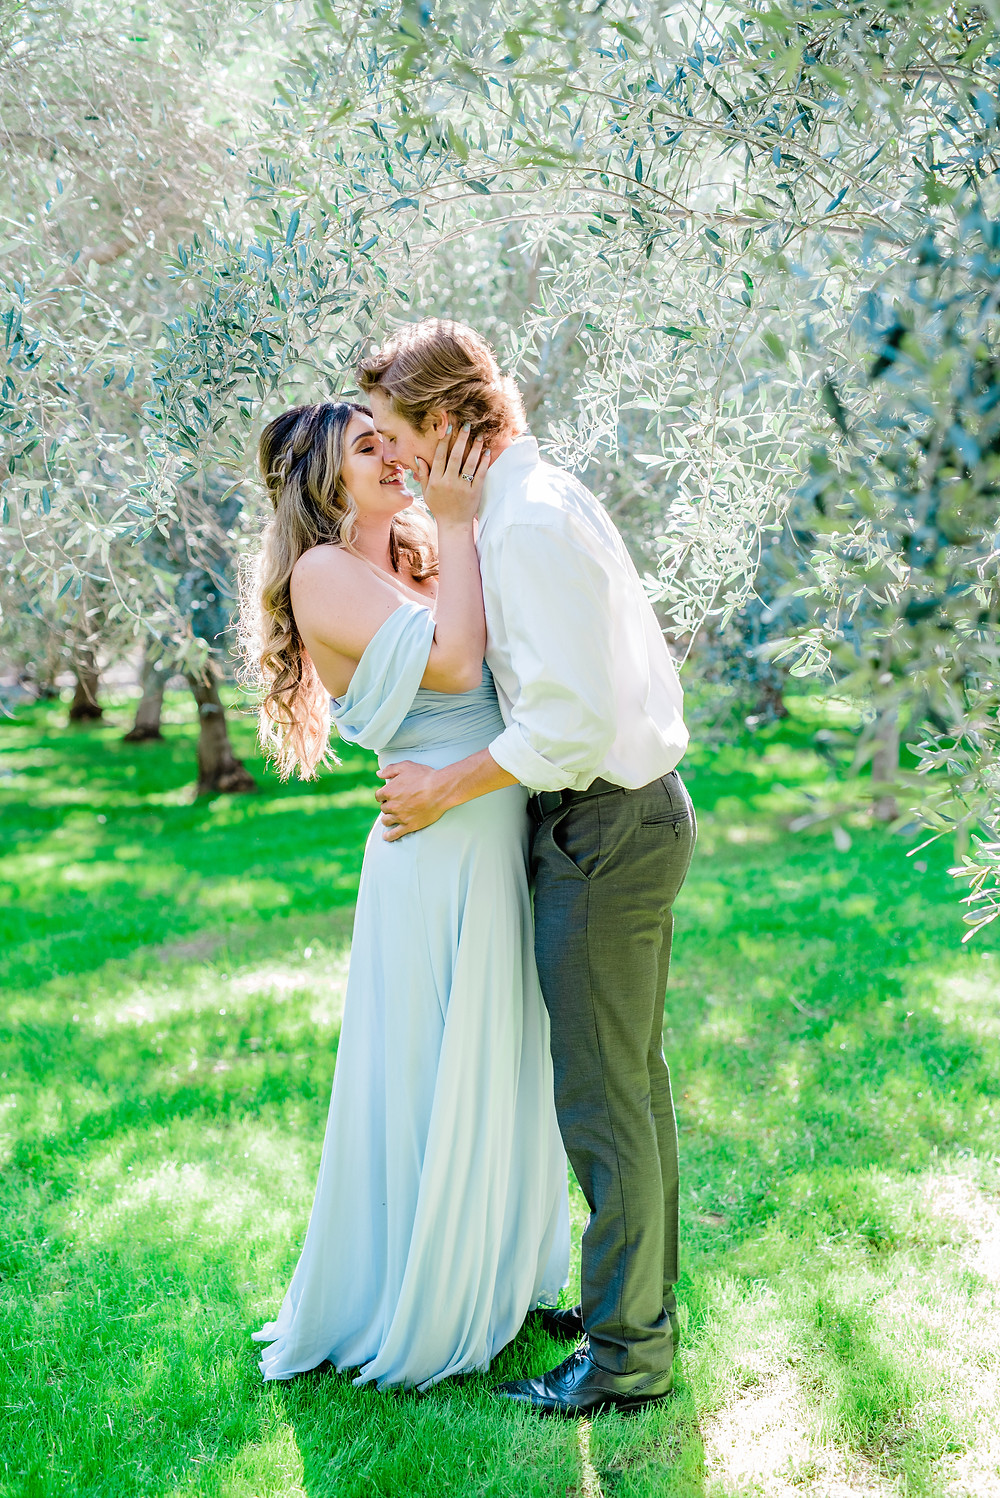 Temecula olive oil company engagement photos slow kiss with off the shoulder blue dress